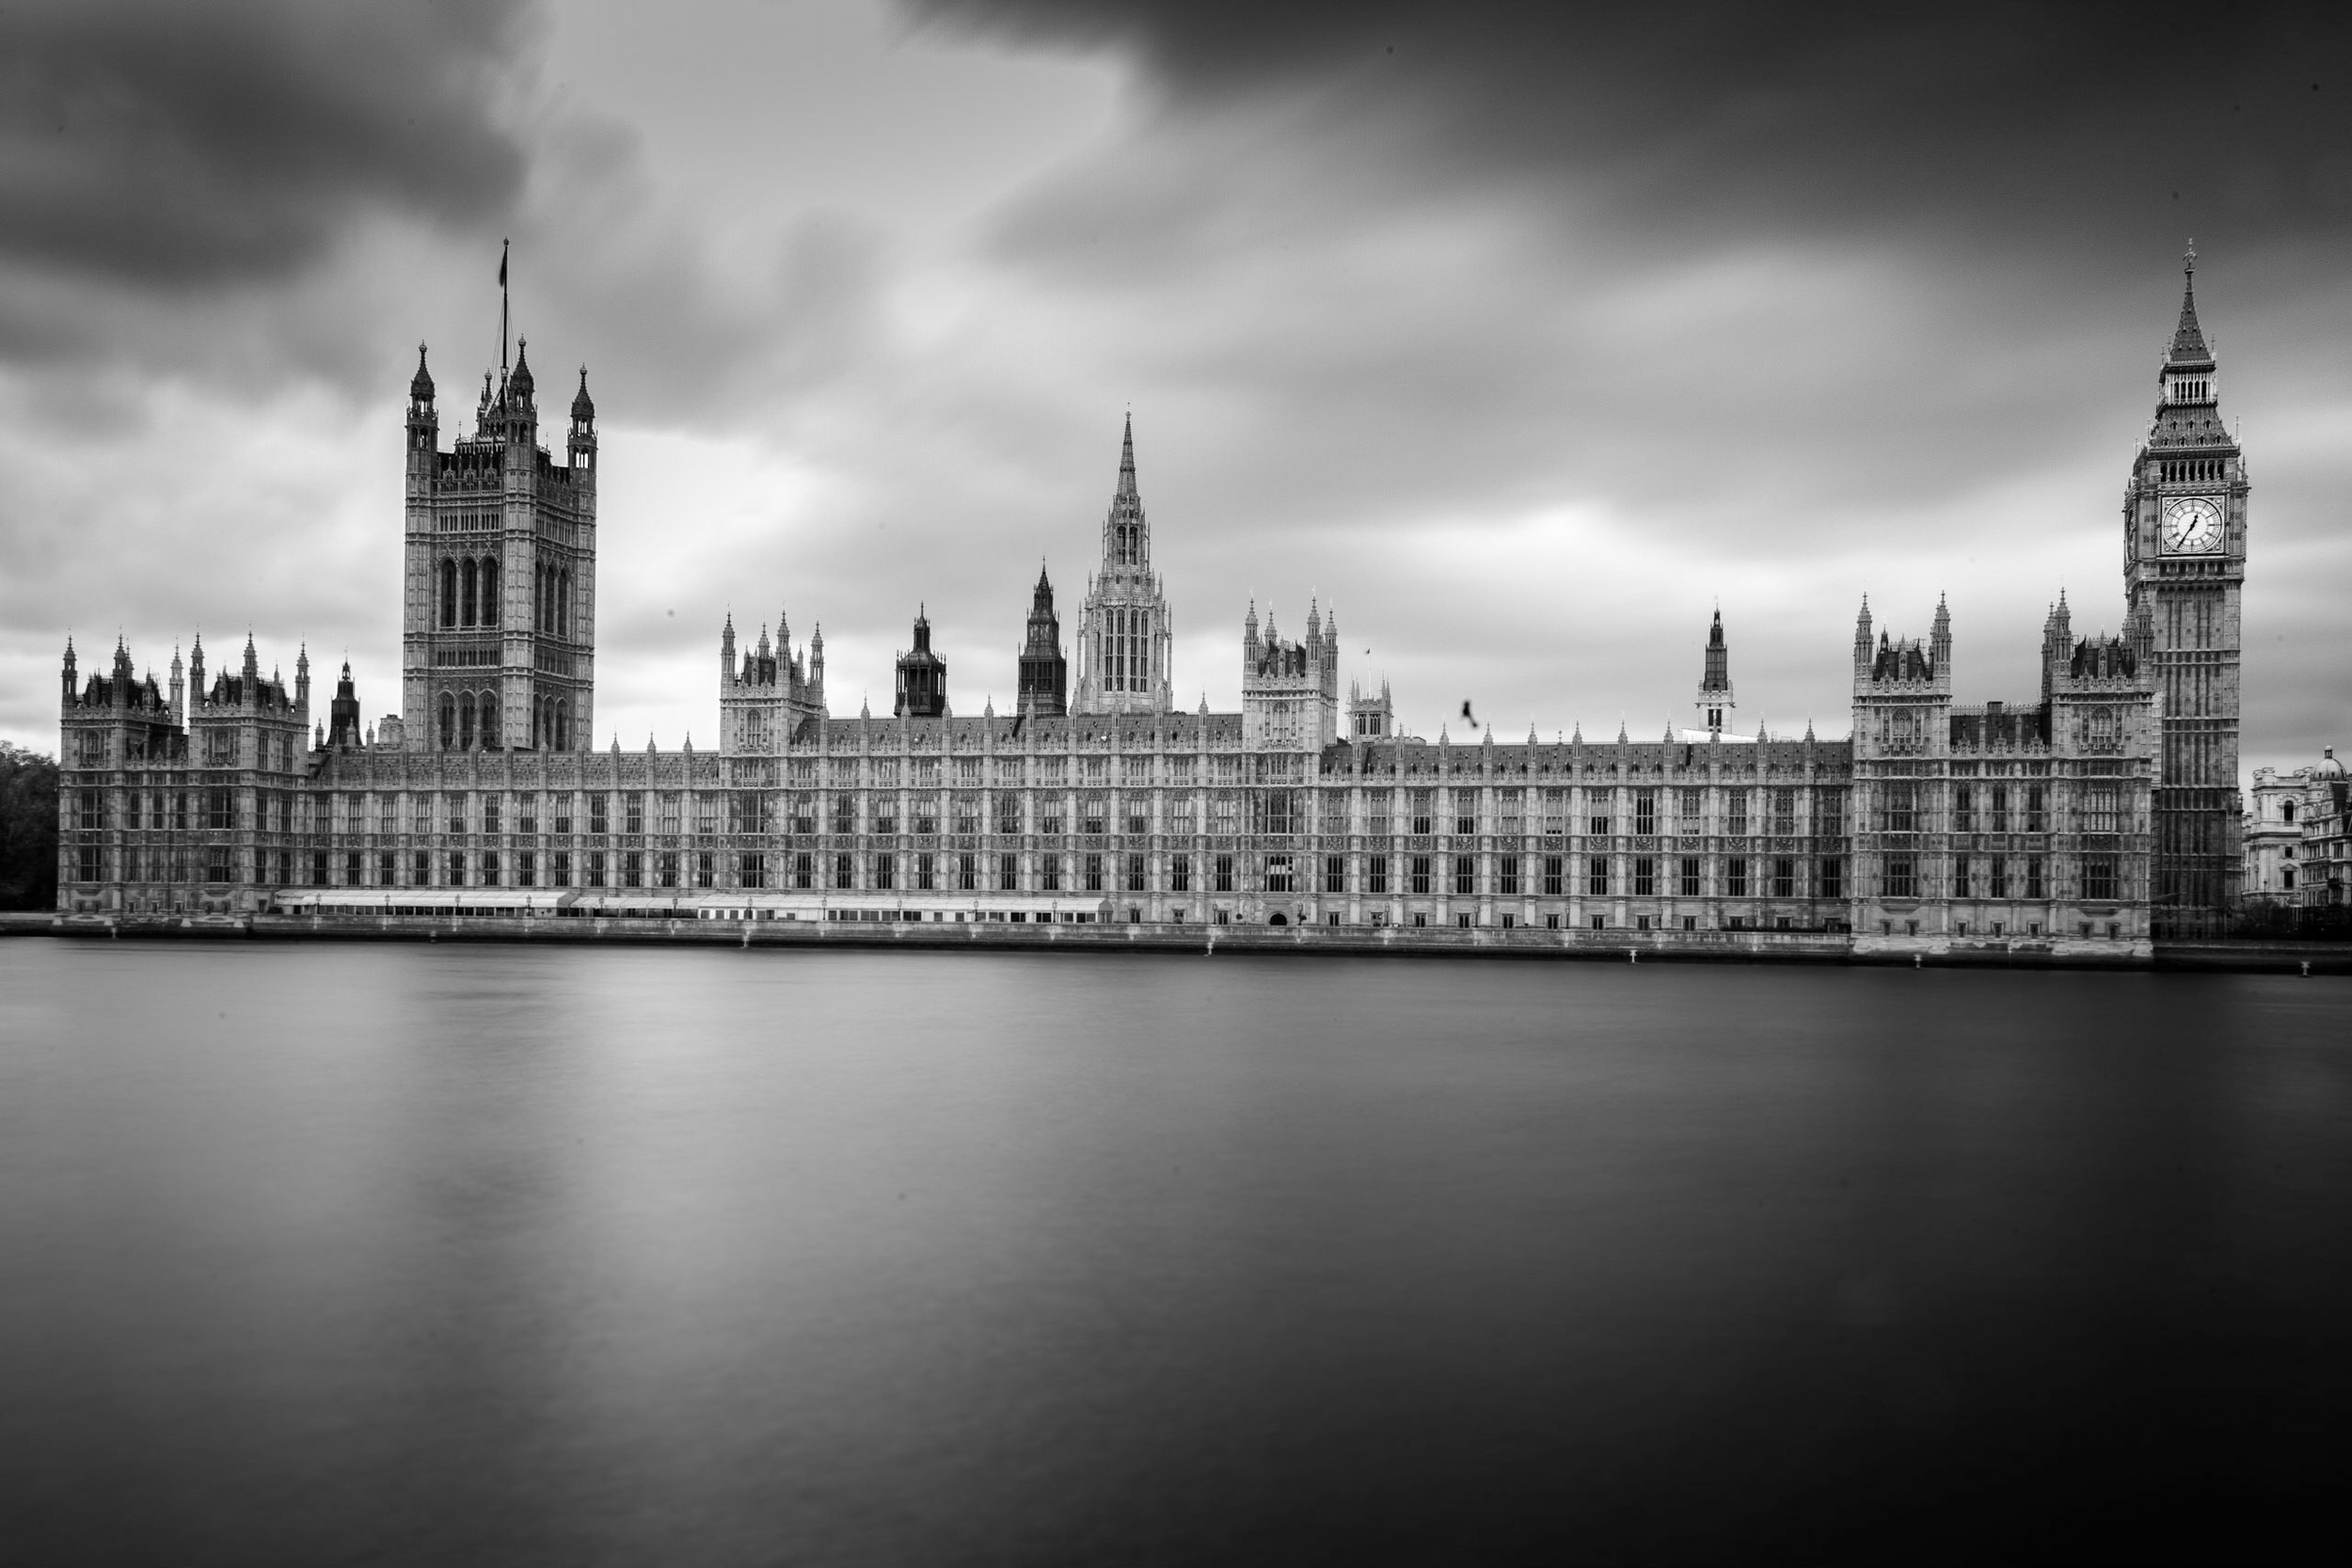 The Palace of Wesminster, London, by Rick McEvoy Architectural Photographer